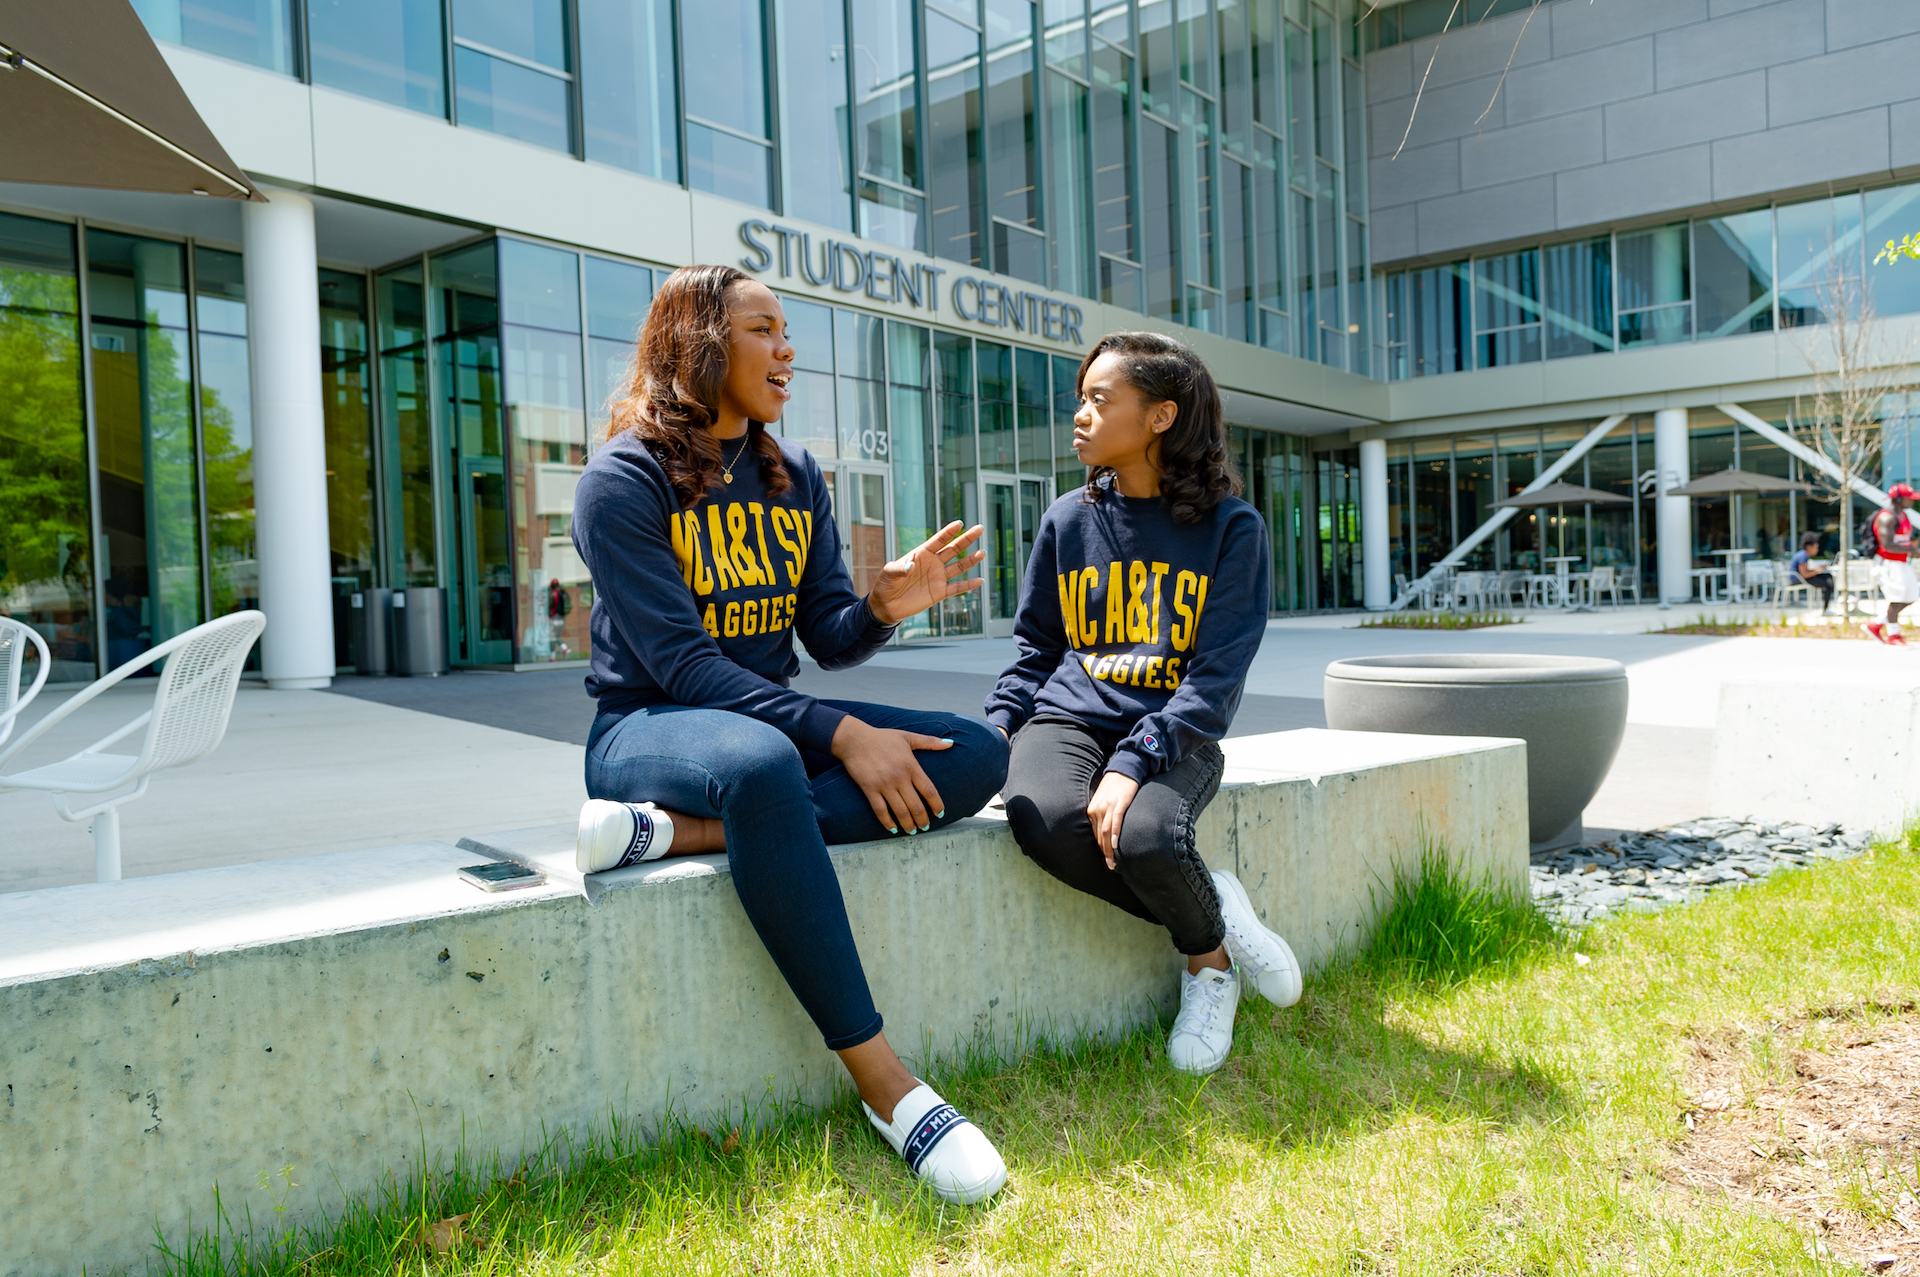 two students wearing NC A&T Aggies shirts sitting in front of the student center